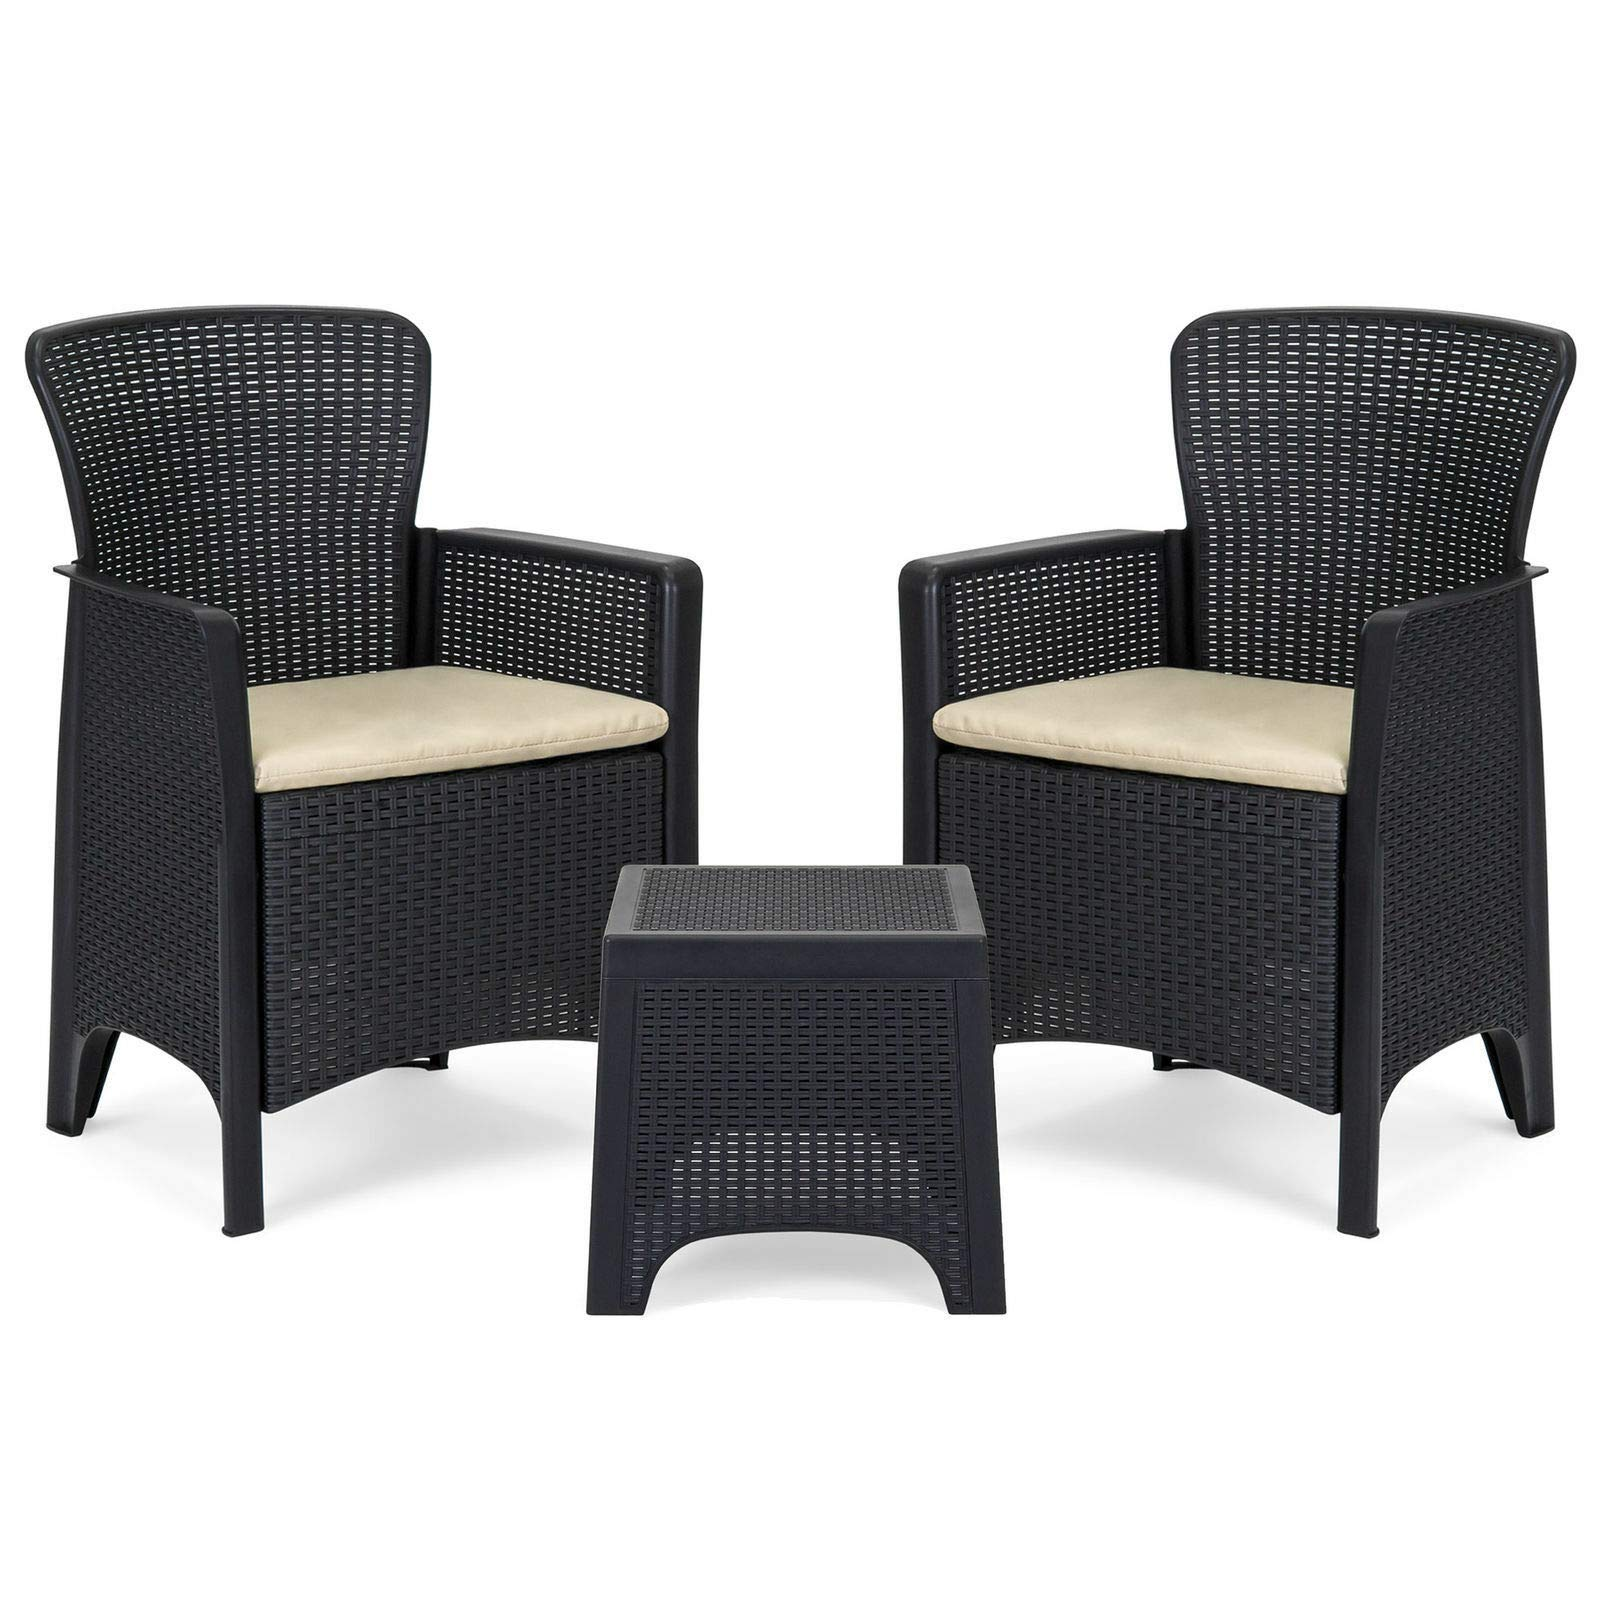 Dj_siphraya Table Chair Set Black Made of Polypropylene Plastic,Foam,Polyeste.Size: (LXWXH)Table15.5''x15.5''x15.5'',Chair: 23''x20''x34''.Seat:(LXW)19.5''x18.25'' Set of 3.Enjoy and durable style for outdoor